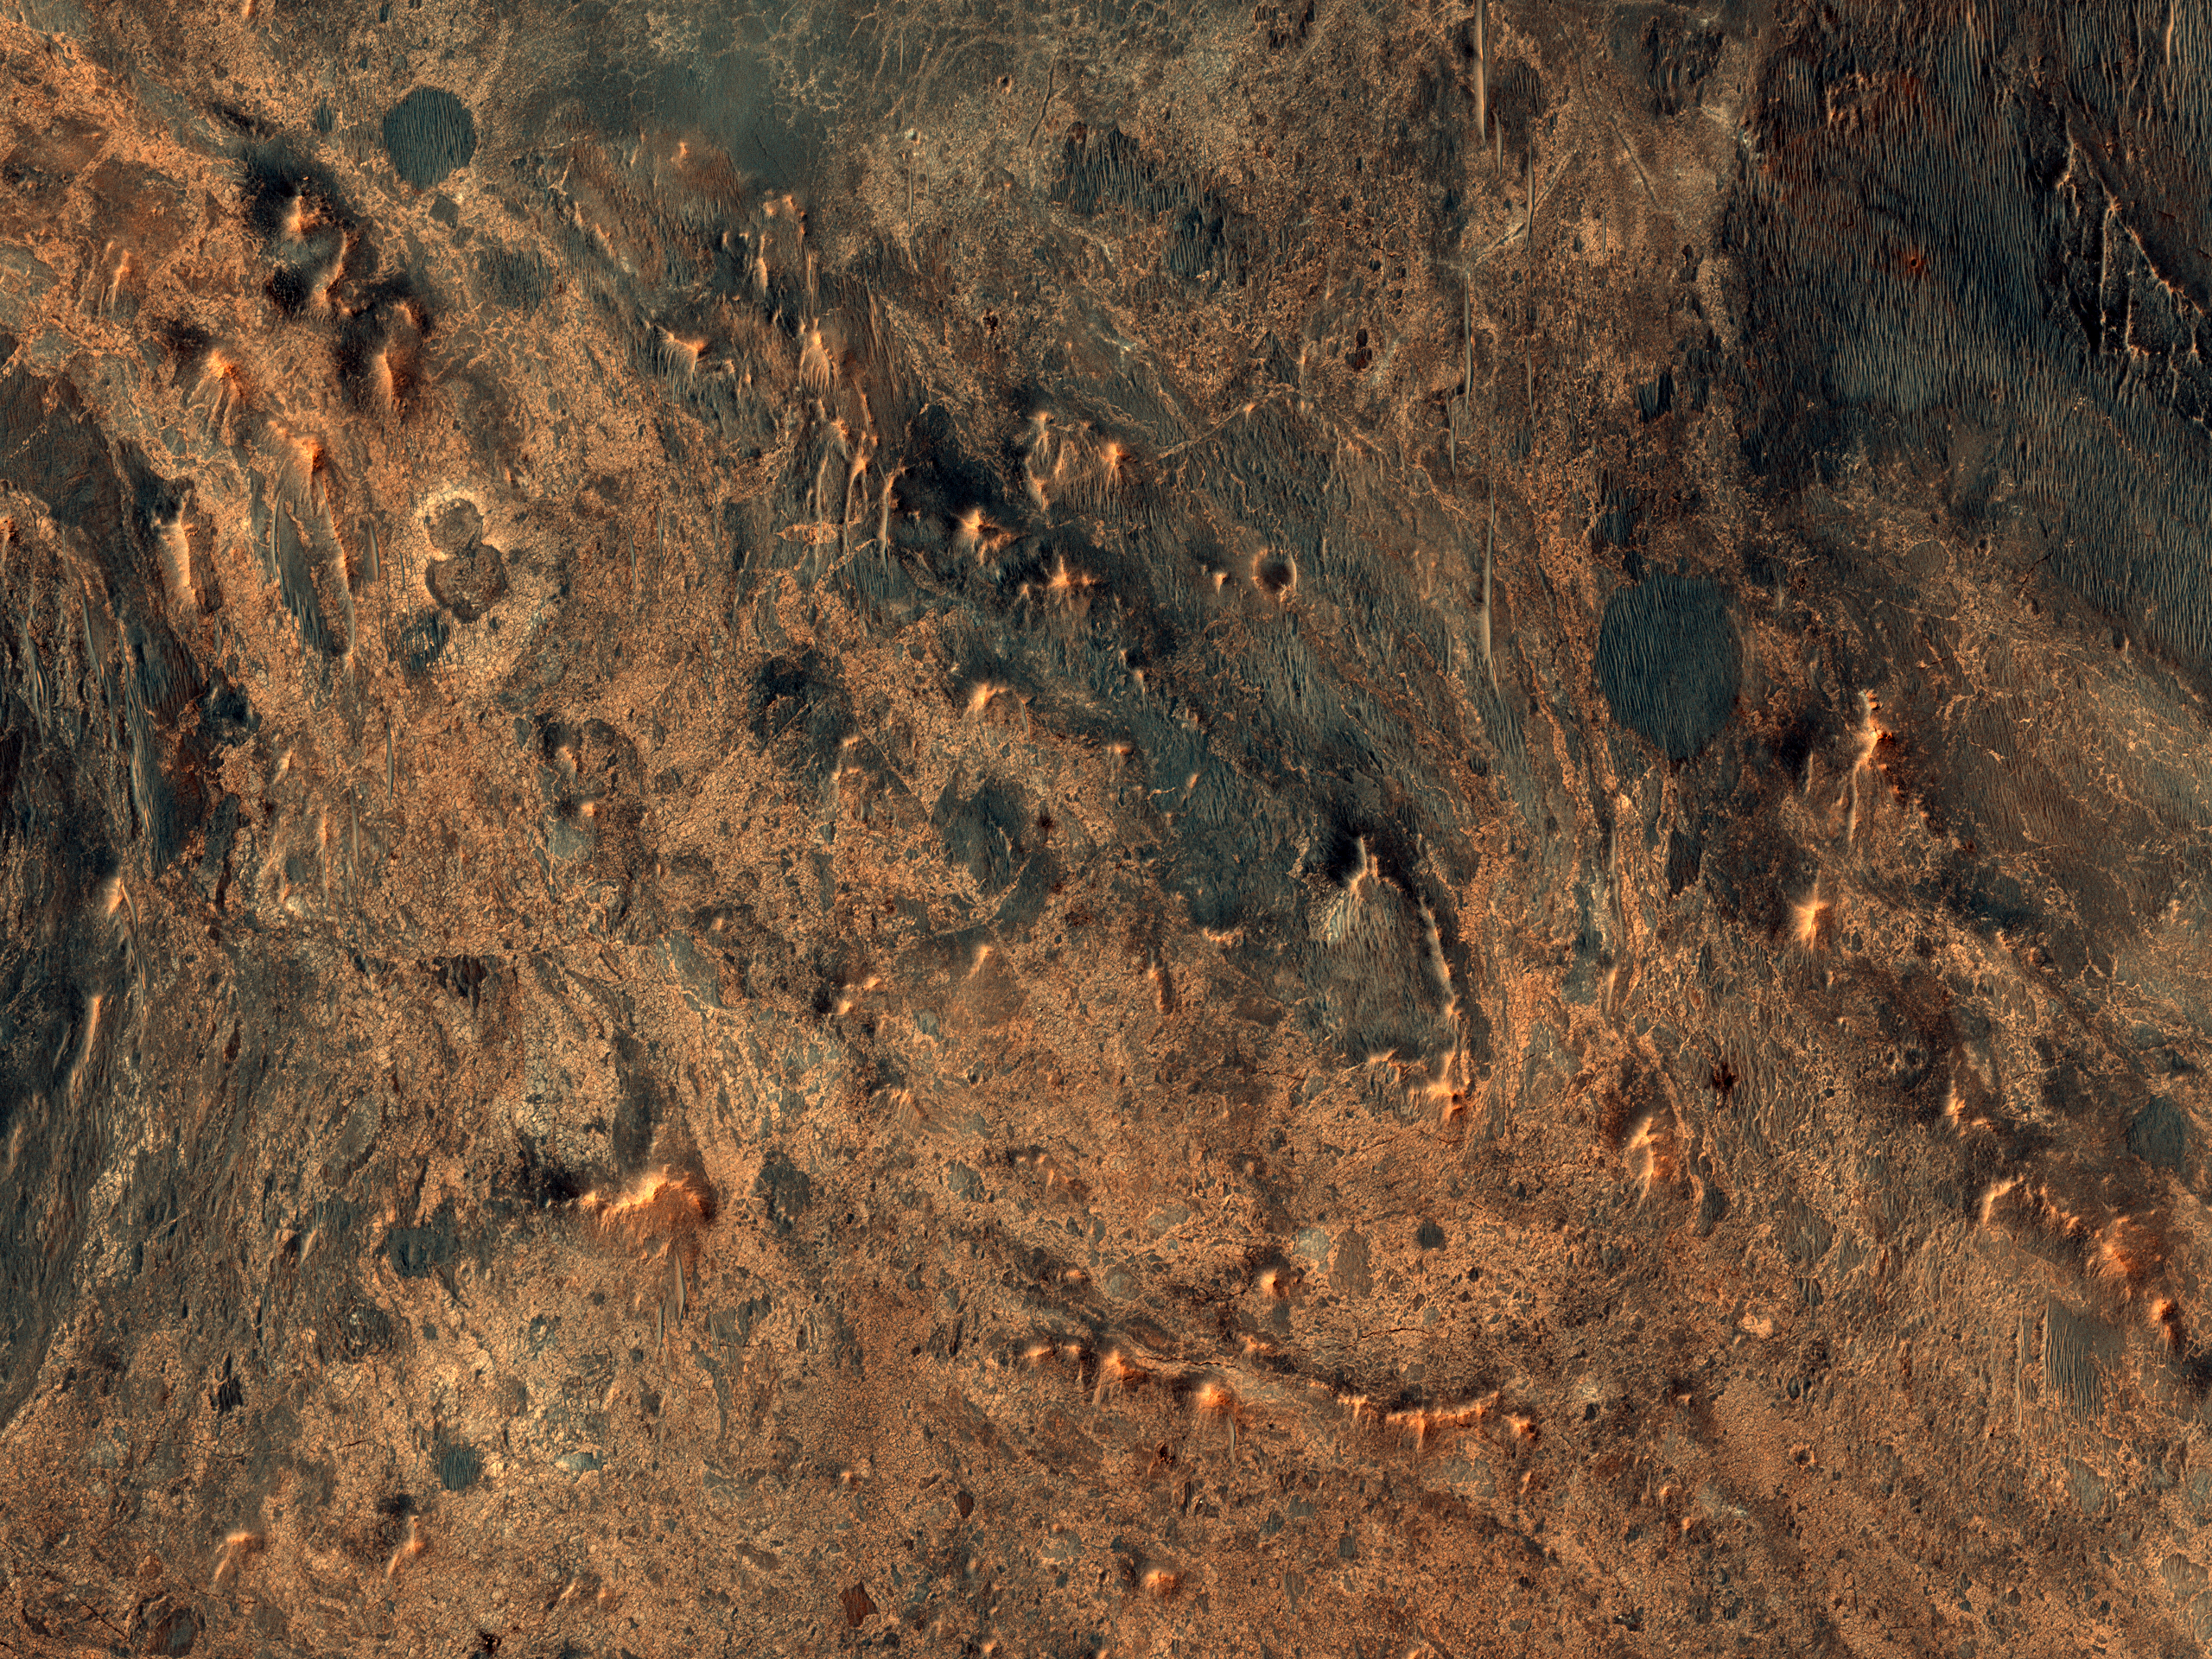 Exposed Ejecta West of Hargraves Crater near Nili Fossae Trough